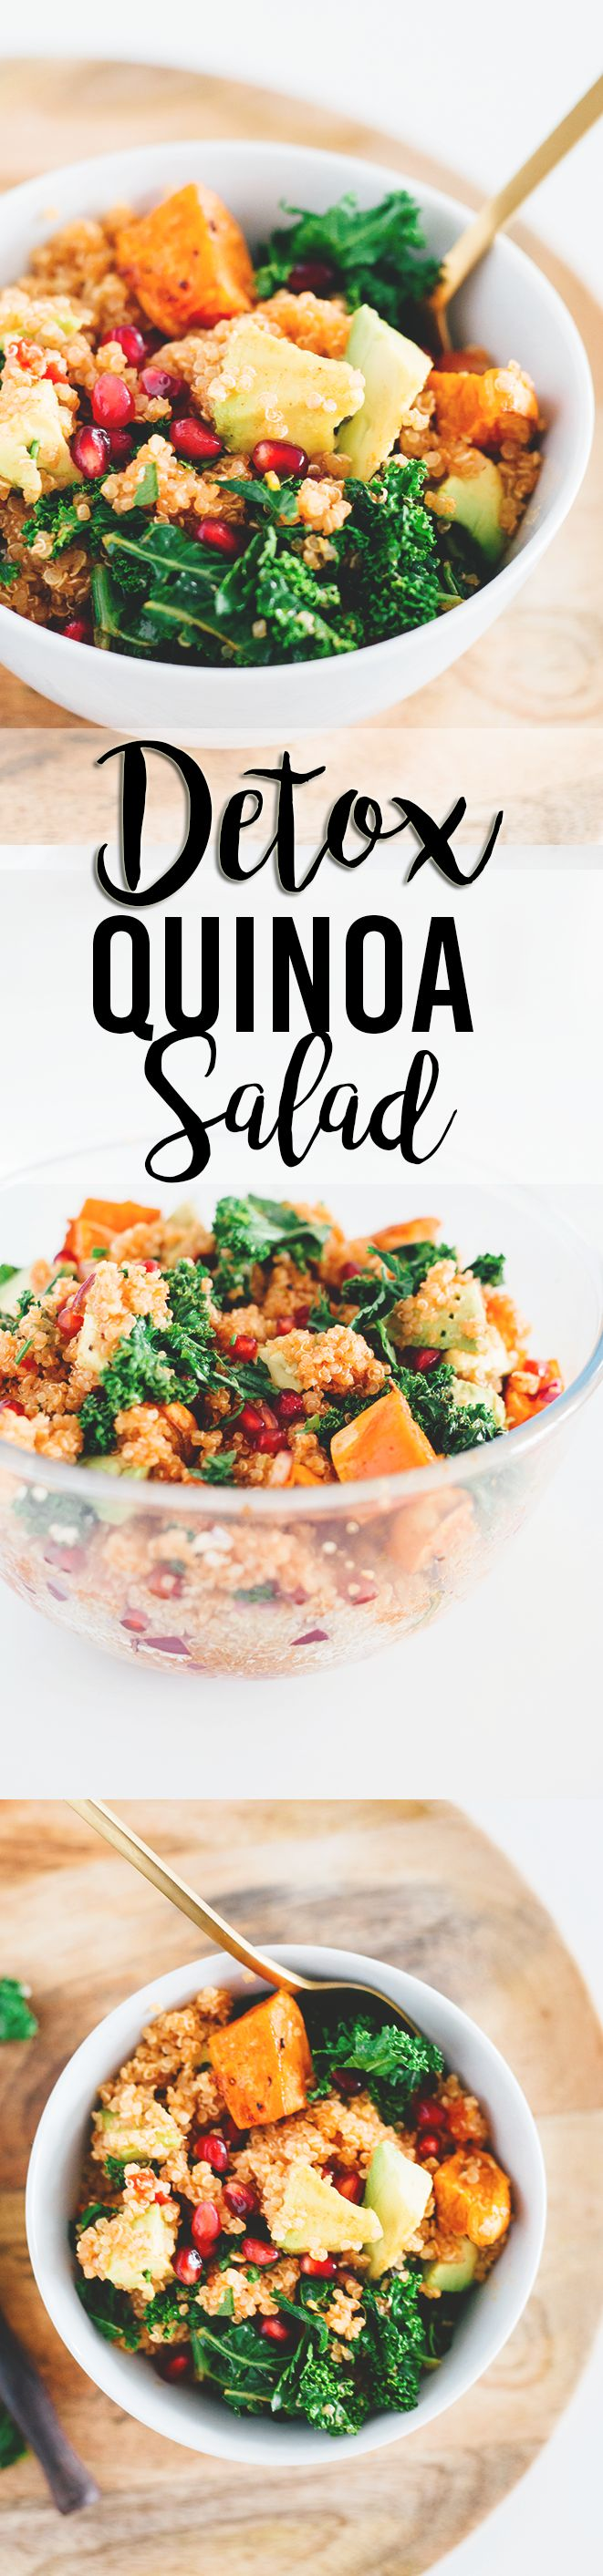 Delicious Detox Vegan Quinoa Salad with Kale and Pomegranate - A great detox recipe after the holiday season. Loaded with Sweet Potato, Kale, Tomato, Pomegranate, Red Onion and and an Orange Paprika Dressing. #detox #diet #vegan #veganrecipes #healthy #vegetarian #kale